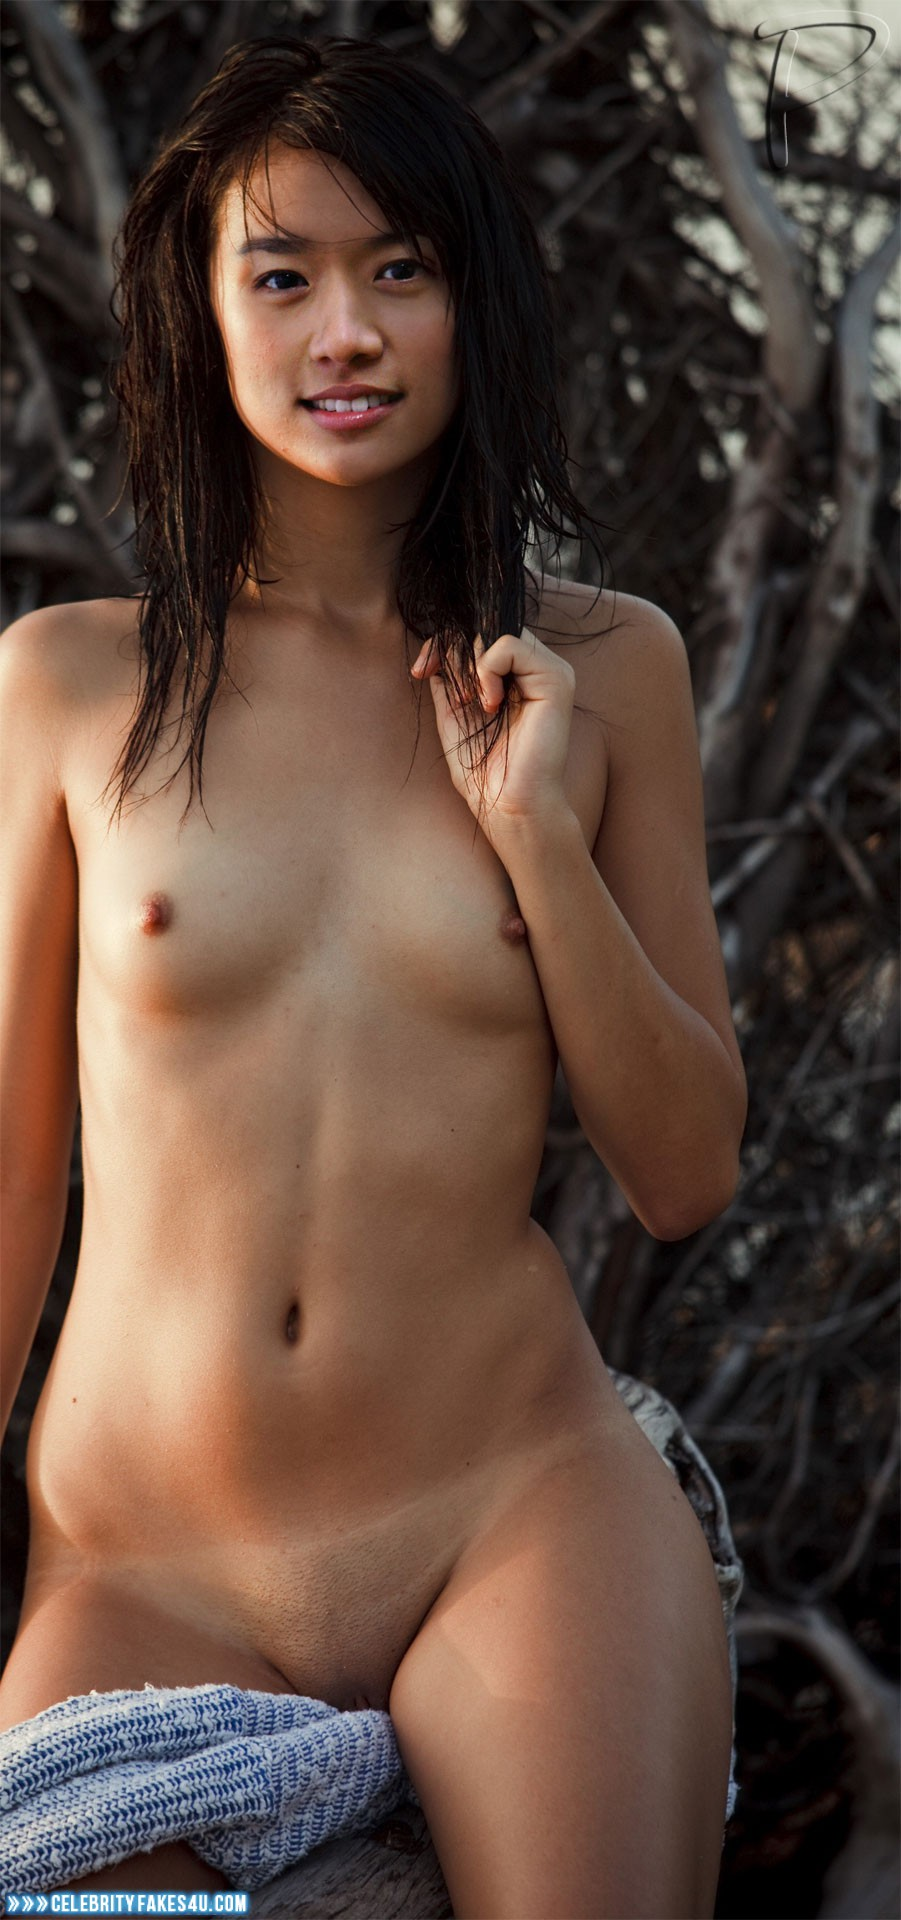 Fuck grace park fucks porno pictures dancing naked